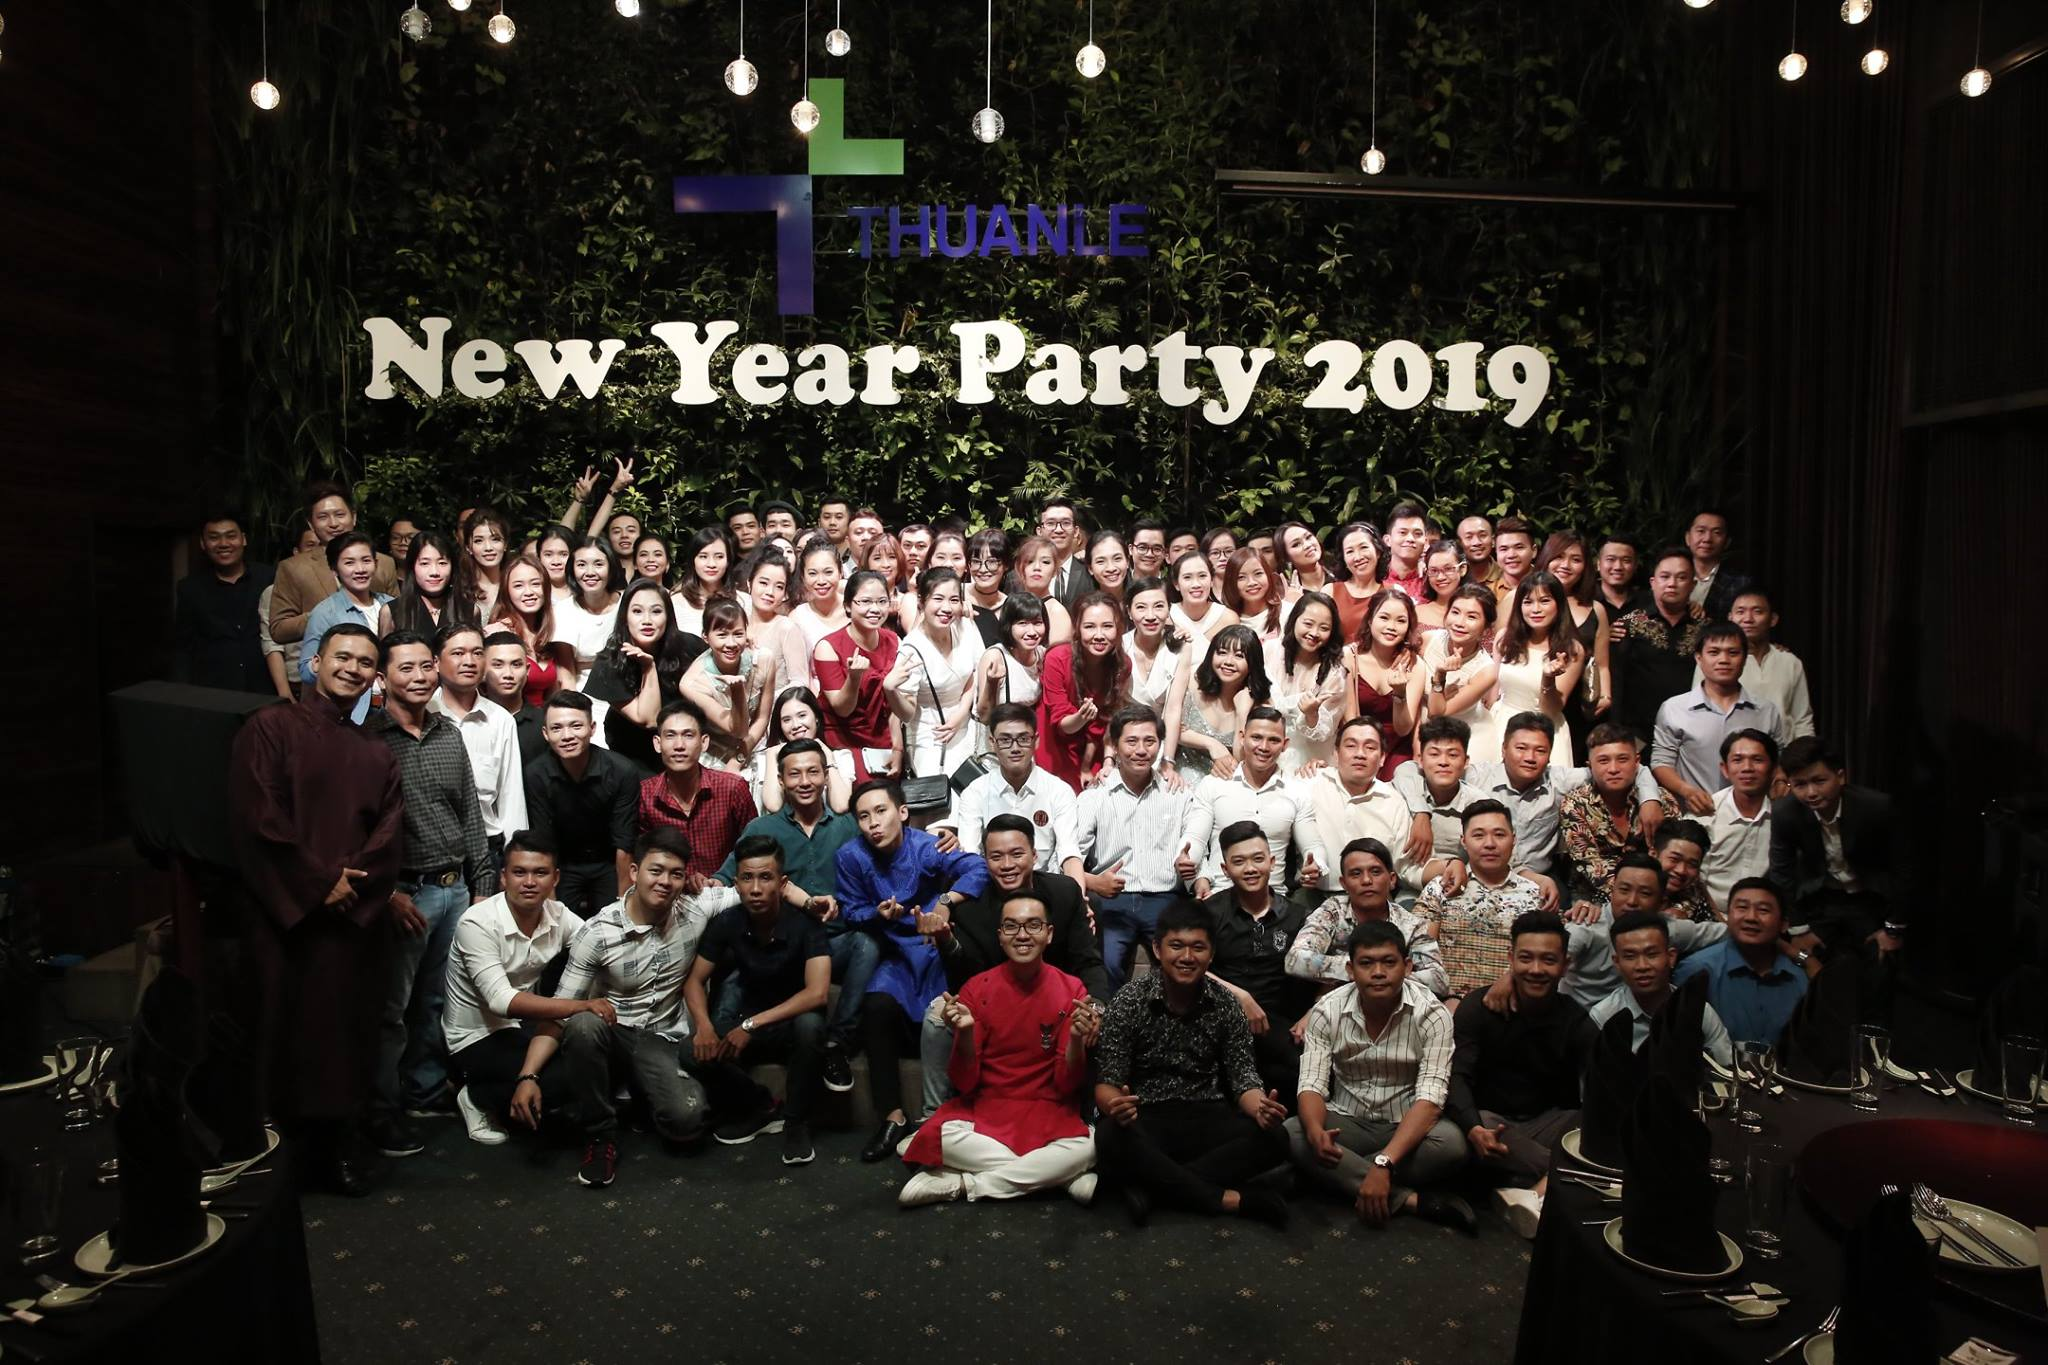 NEW YEAR PARTY 2019